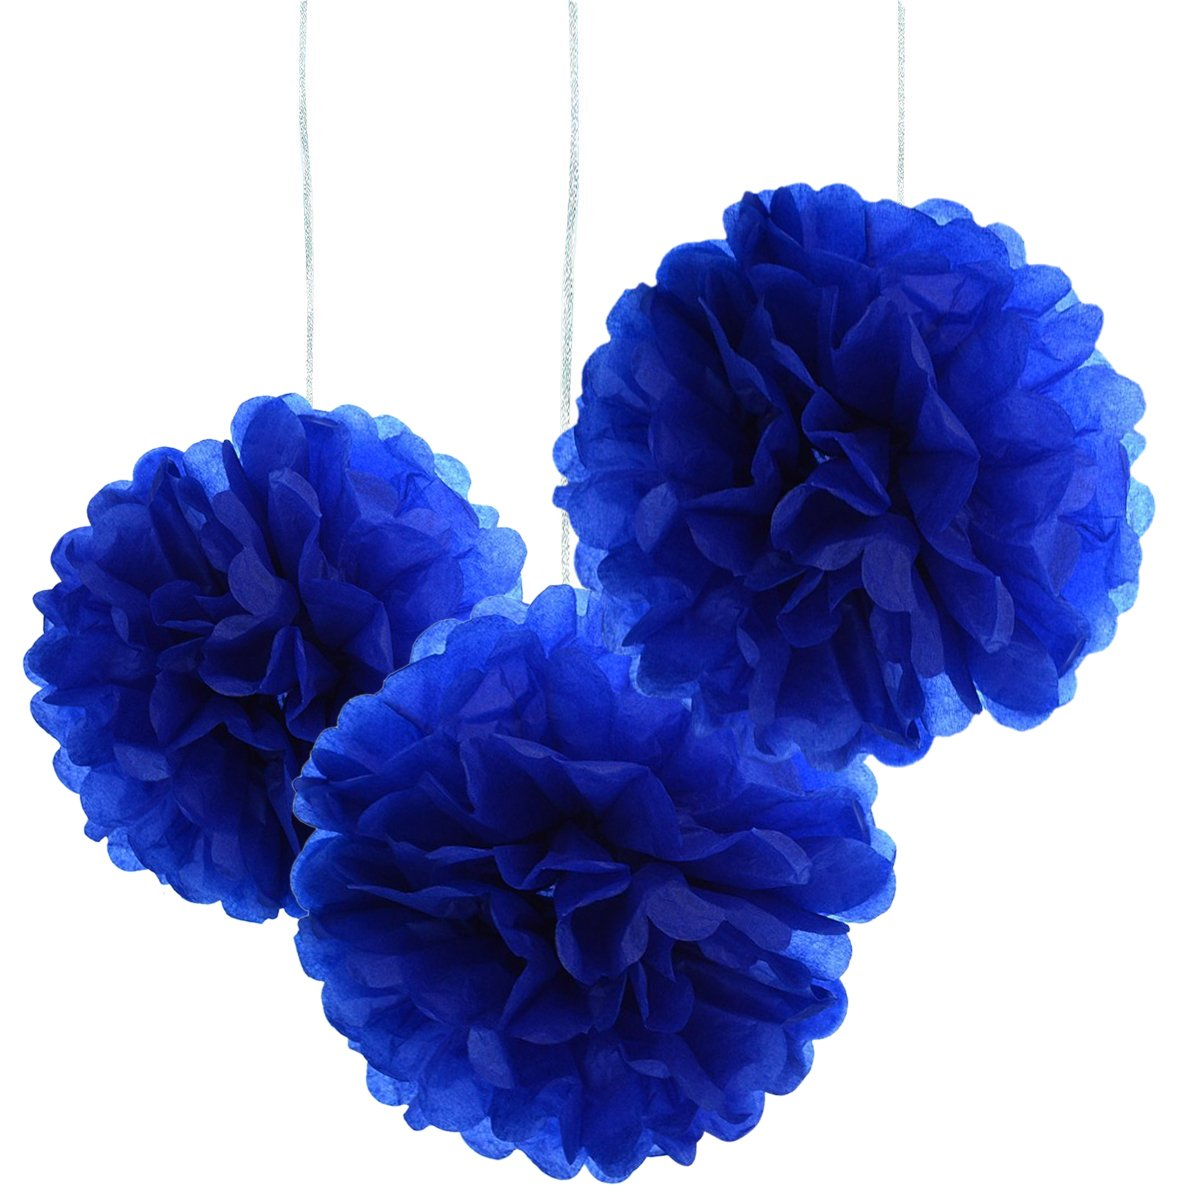 Amazon 10pcs yellow tissue hanging paper pom poms hmxpls 10pcs royal blue tissue hanging paper pom poms hmxpls flower ball wedding party outdoor solutioingenieria Image collections